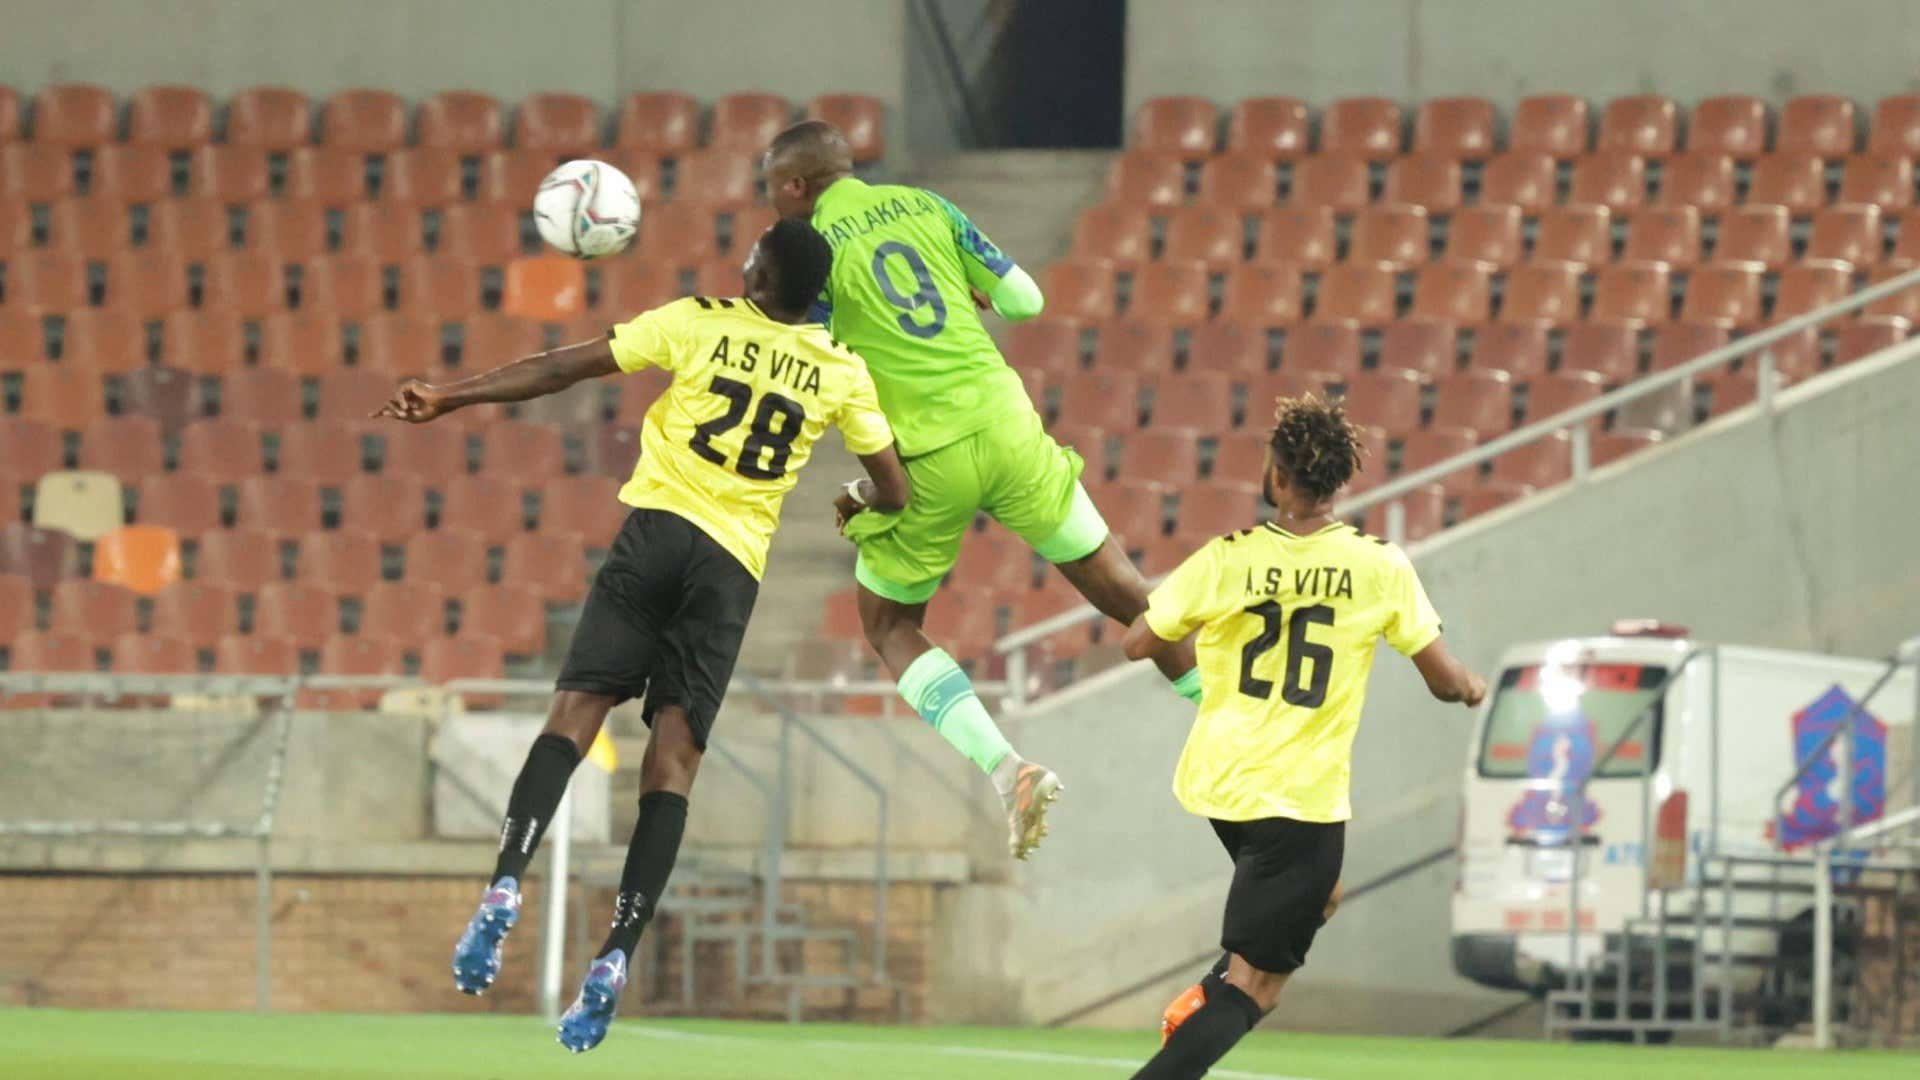 Caf Confederation Cup: Ngema's brace enough for Marumo Gallants to silence AS Vita